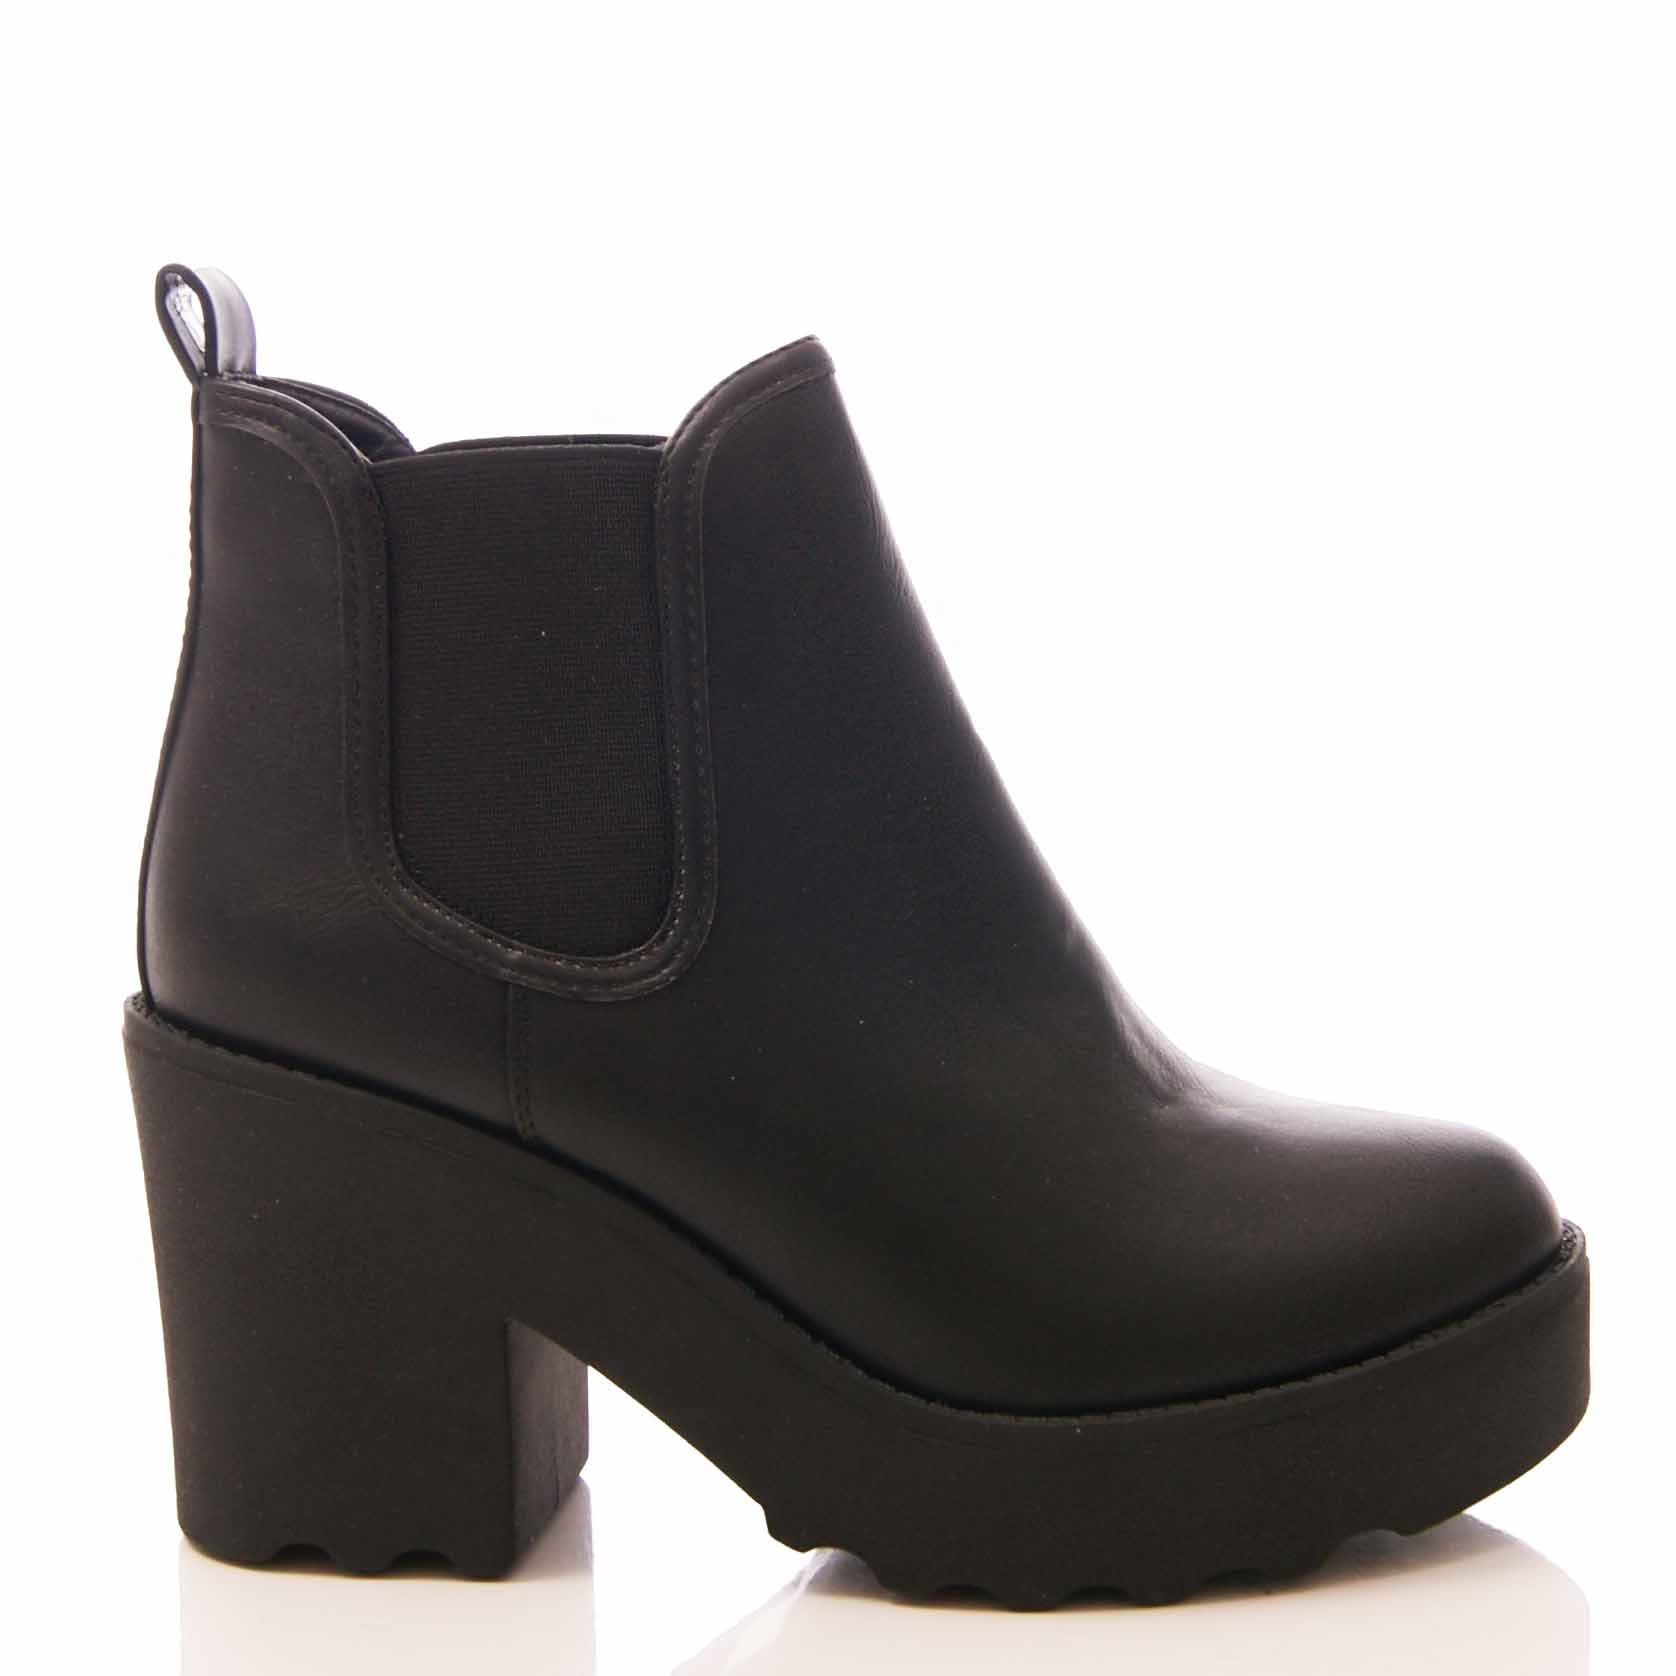 femme bottines chelsea plateforme chunky bottines à talon bottier